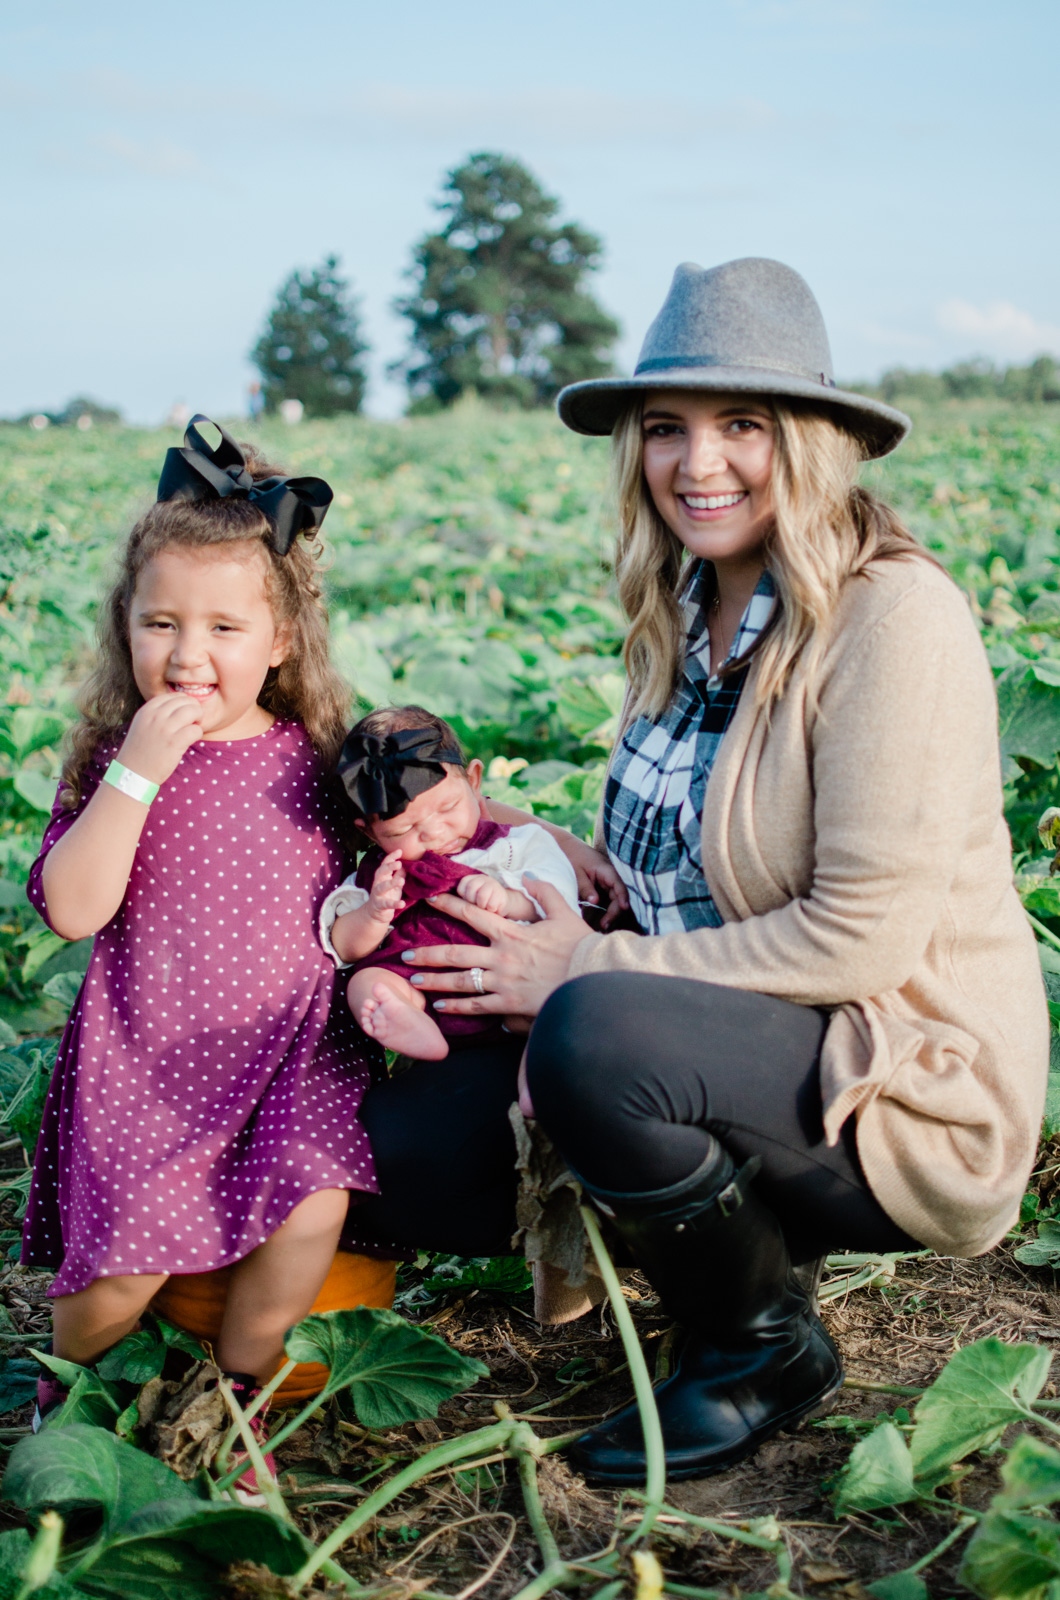 fall family pumpkin patch outfits - coordinating fall family outfits | bylaurenm.com